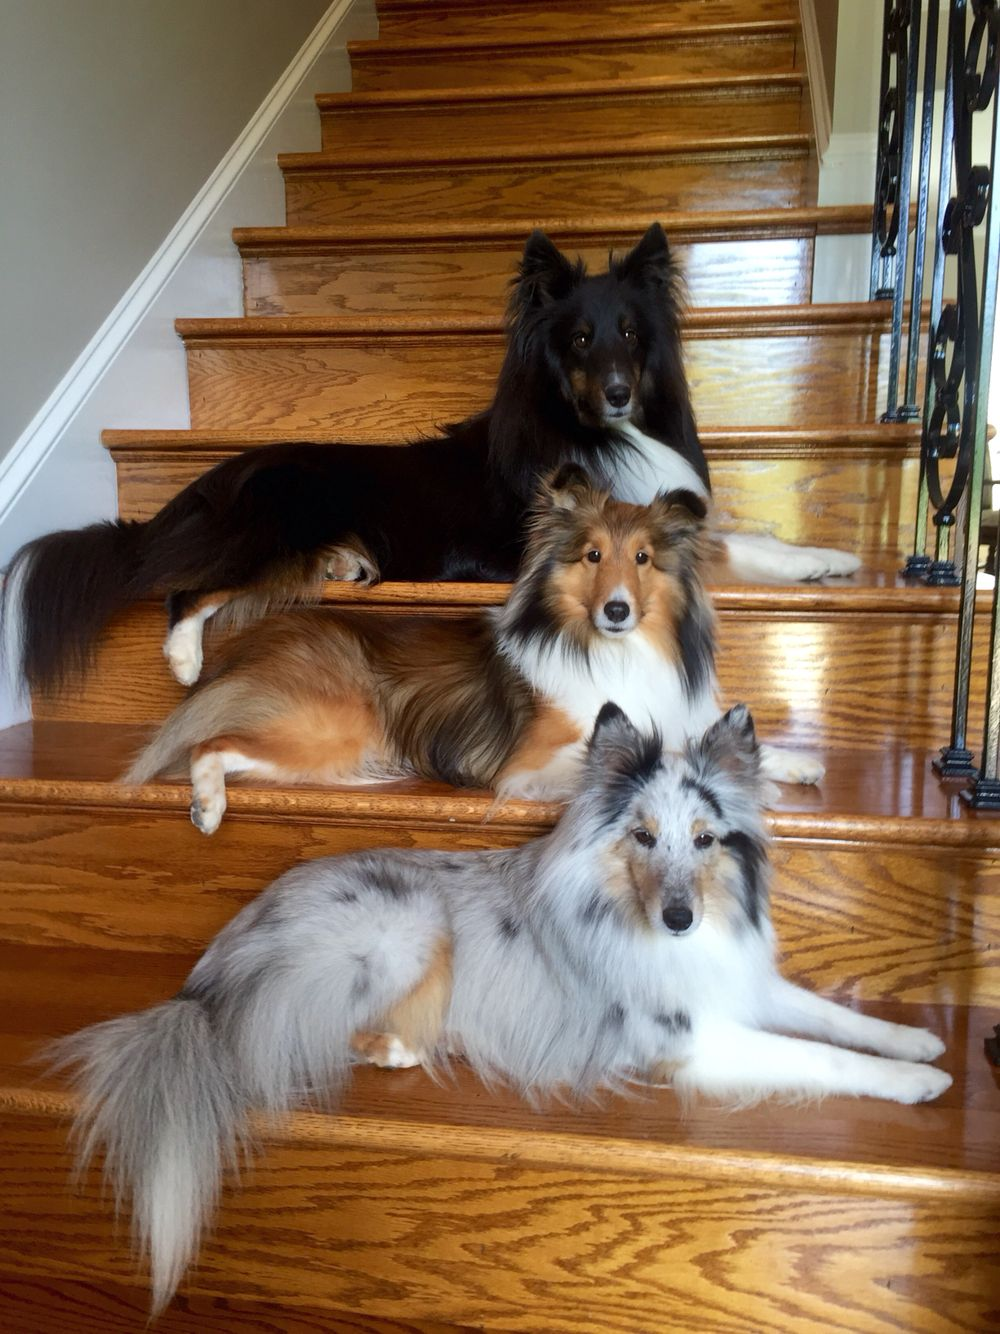 The one in the middle looks just like friendly my favorite dog check nvjuhfo Images